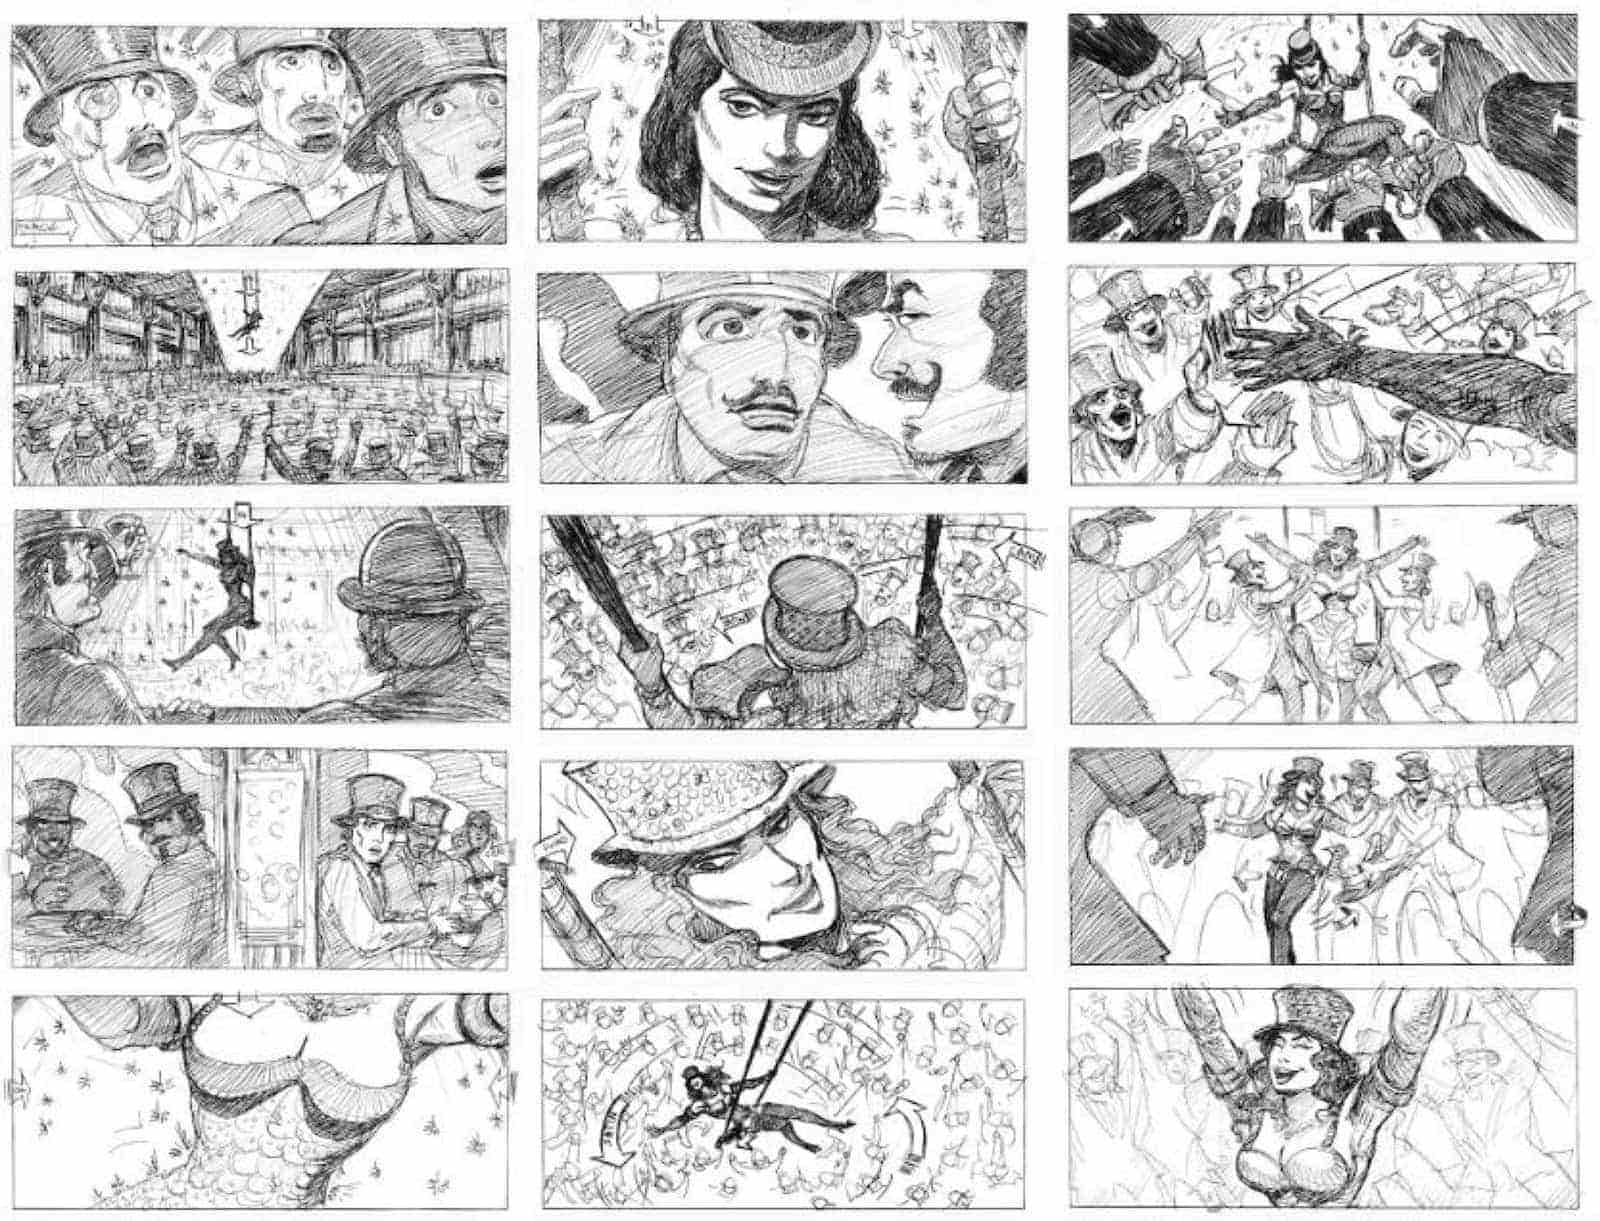 Storyboard Examples for Film - Storyboard Ideas - David Russell - Moulin Rouge Storyboard - StudioBinder